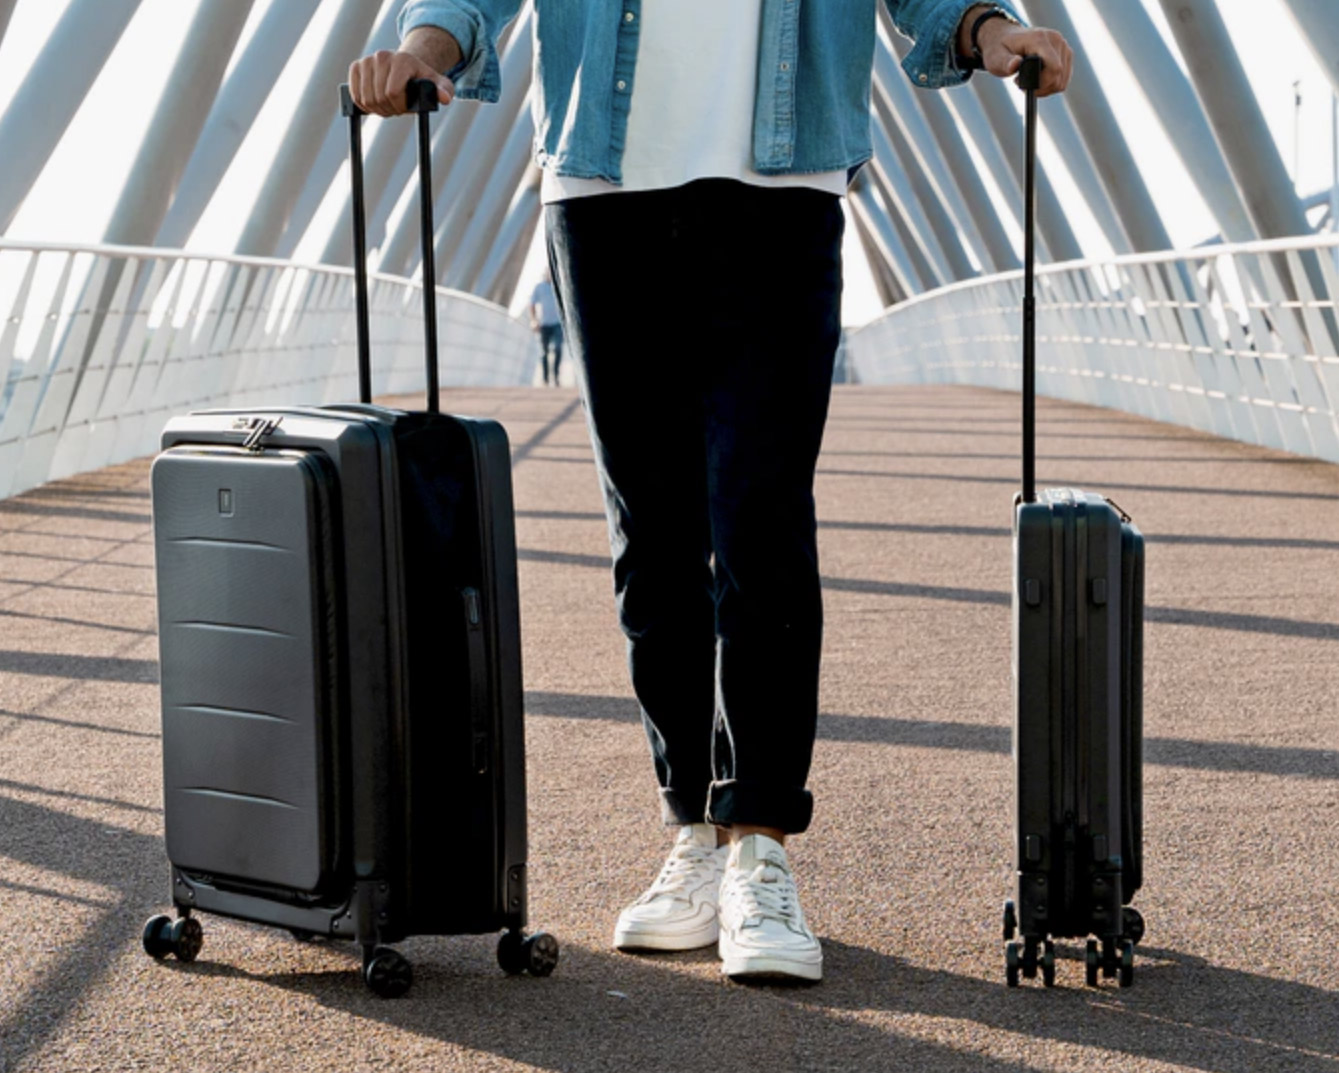 The Lito Suitcase Shrinks & Expands as Needed at werd.com